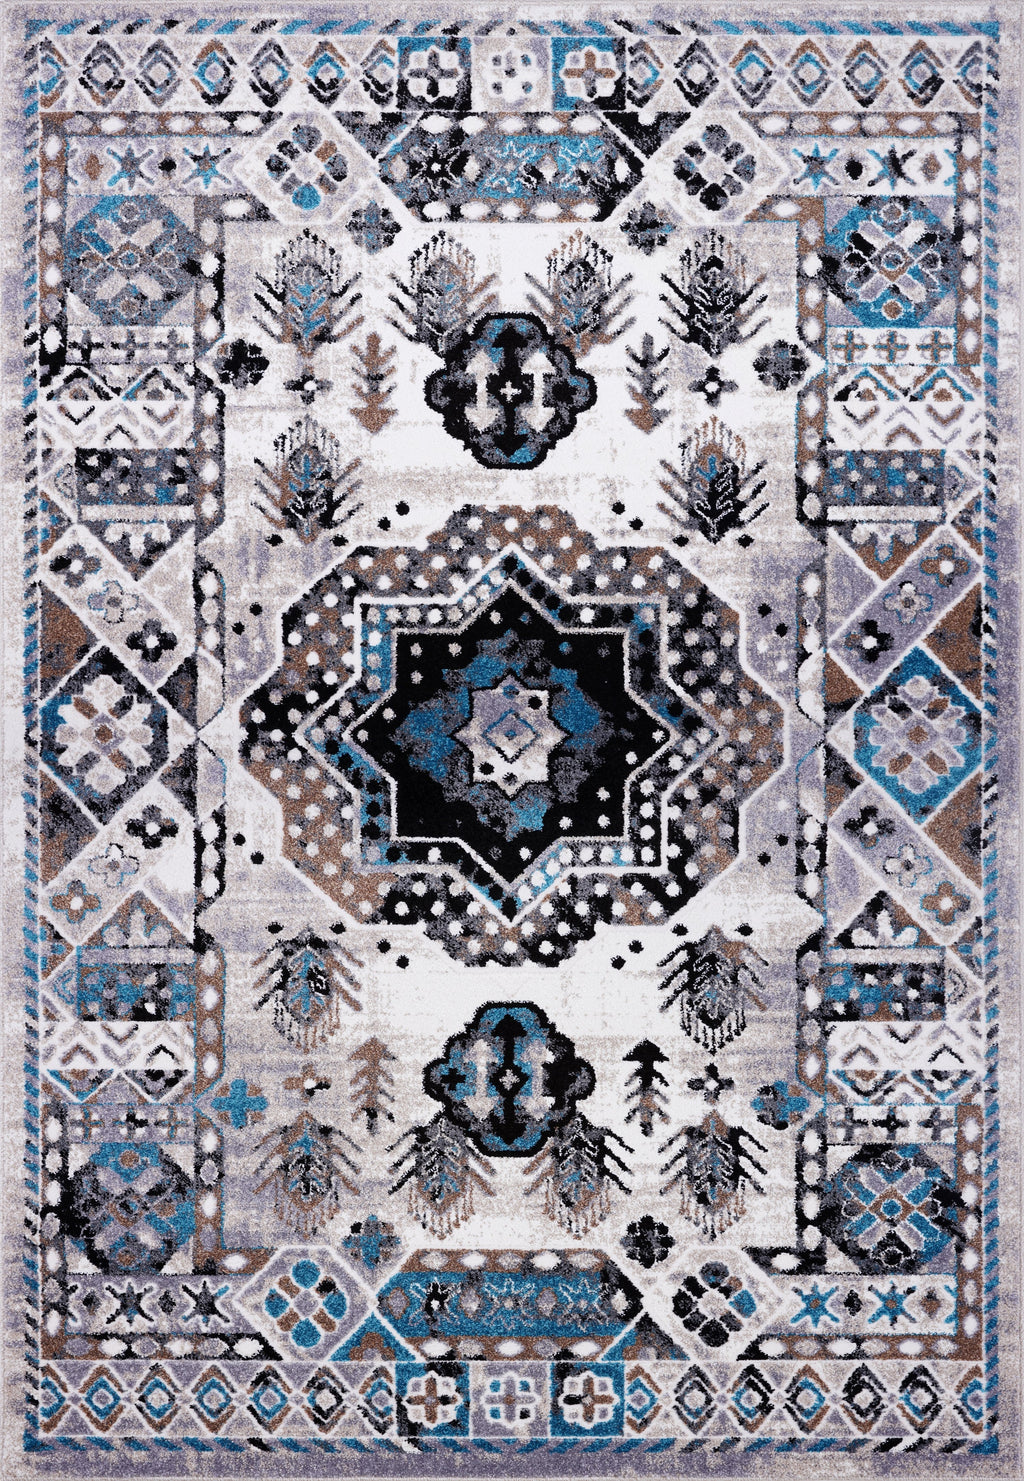 Athens Traditional Geometric Style Durable Innovative Soft Mat in Gray and Turquoise